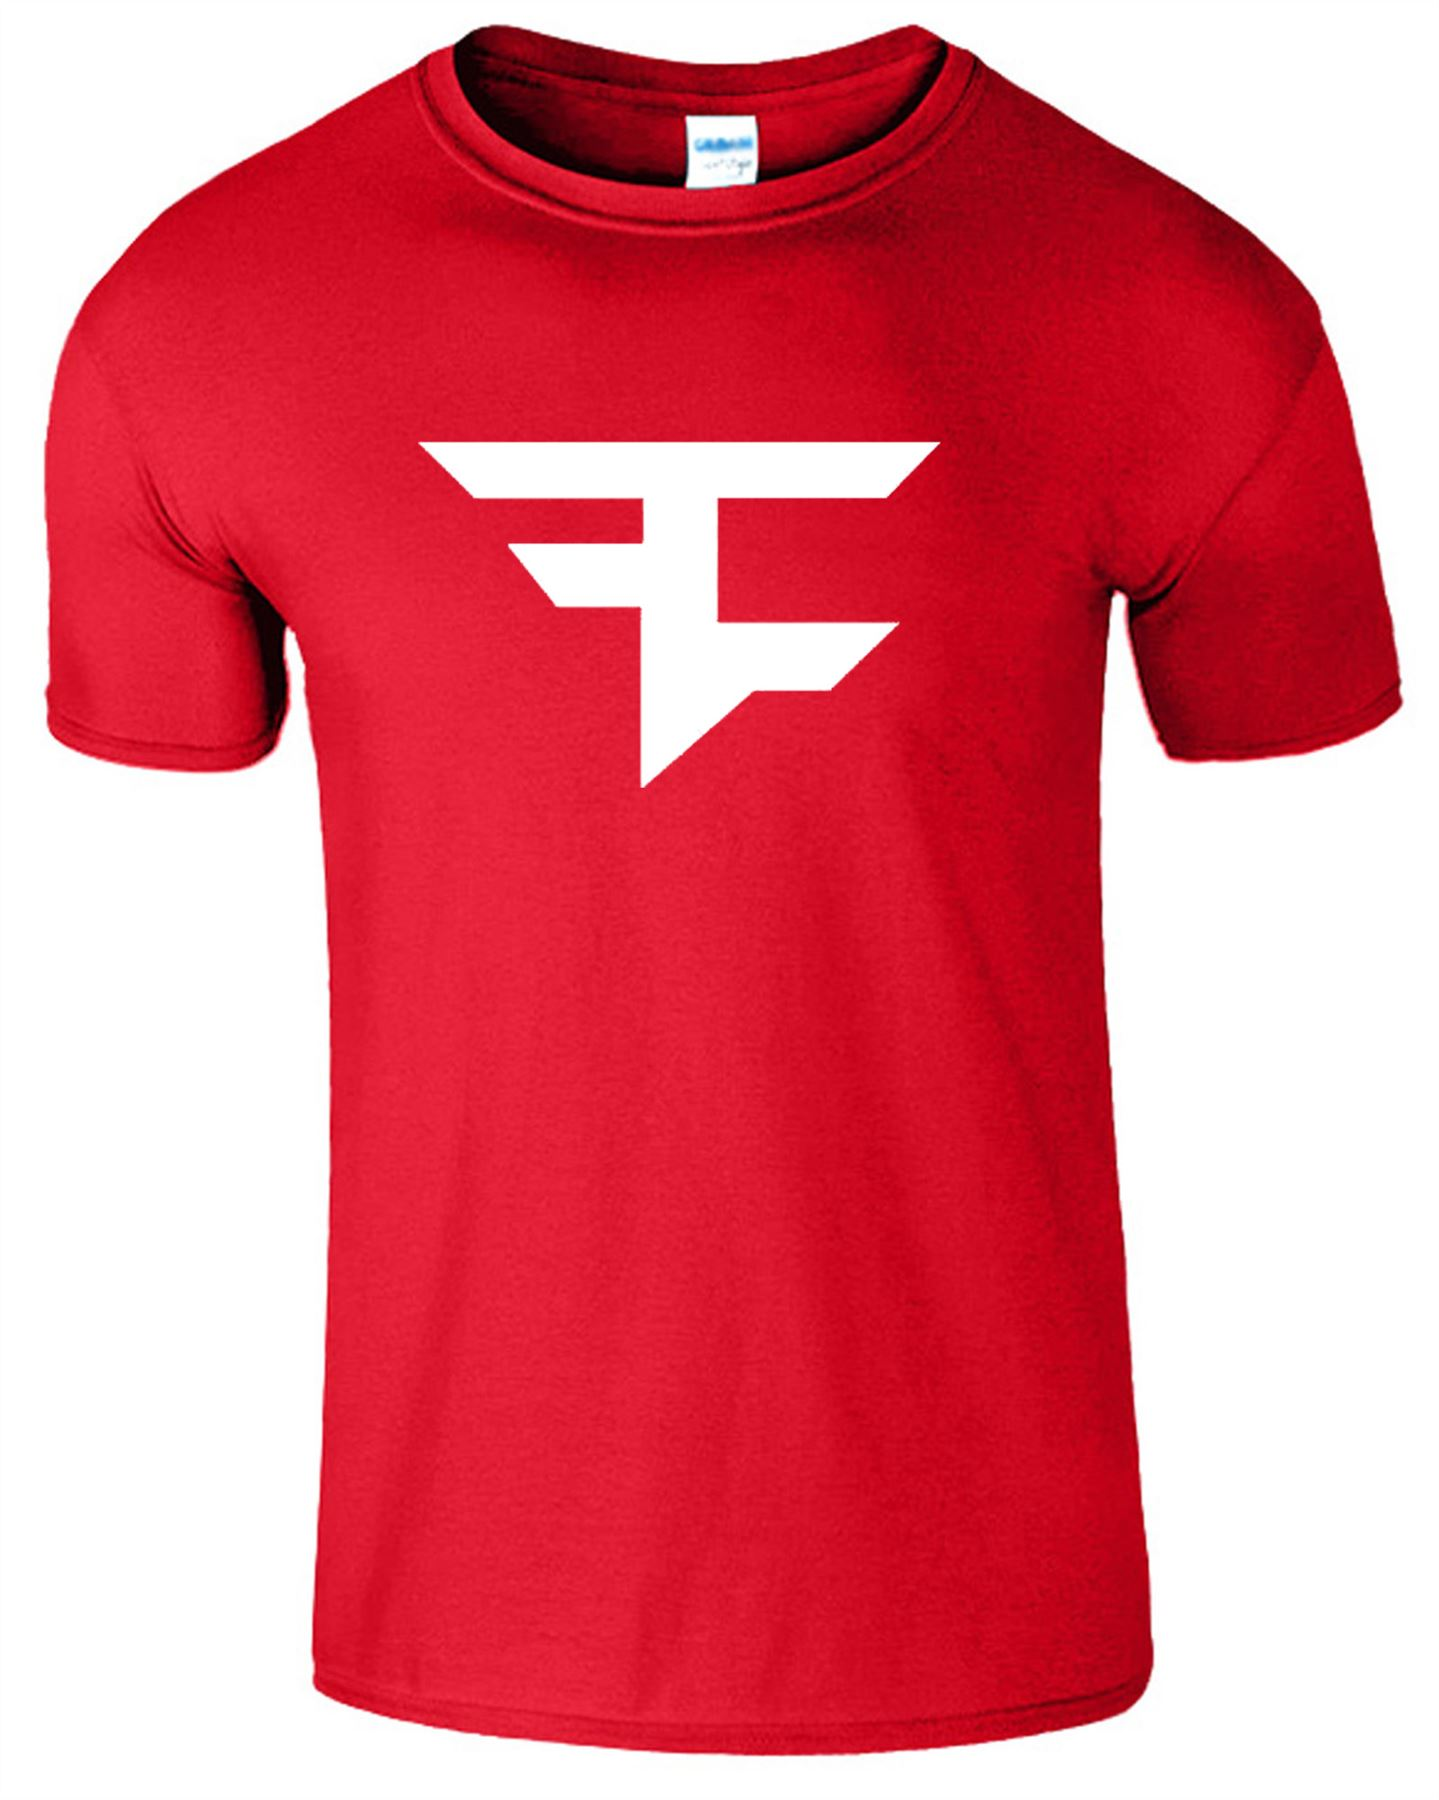 Christmas gift from faze clan images